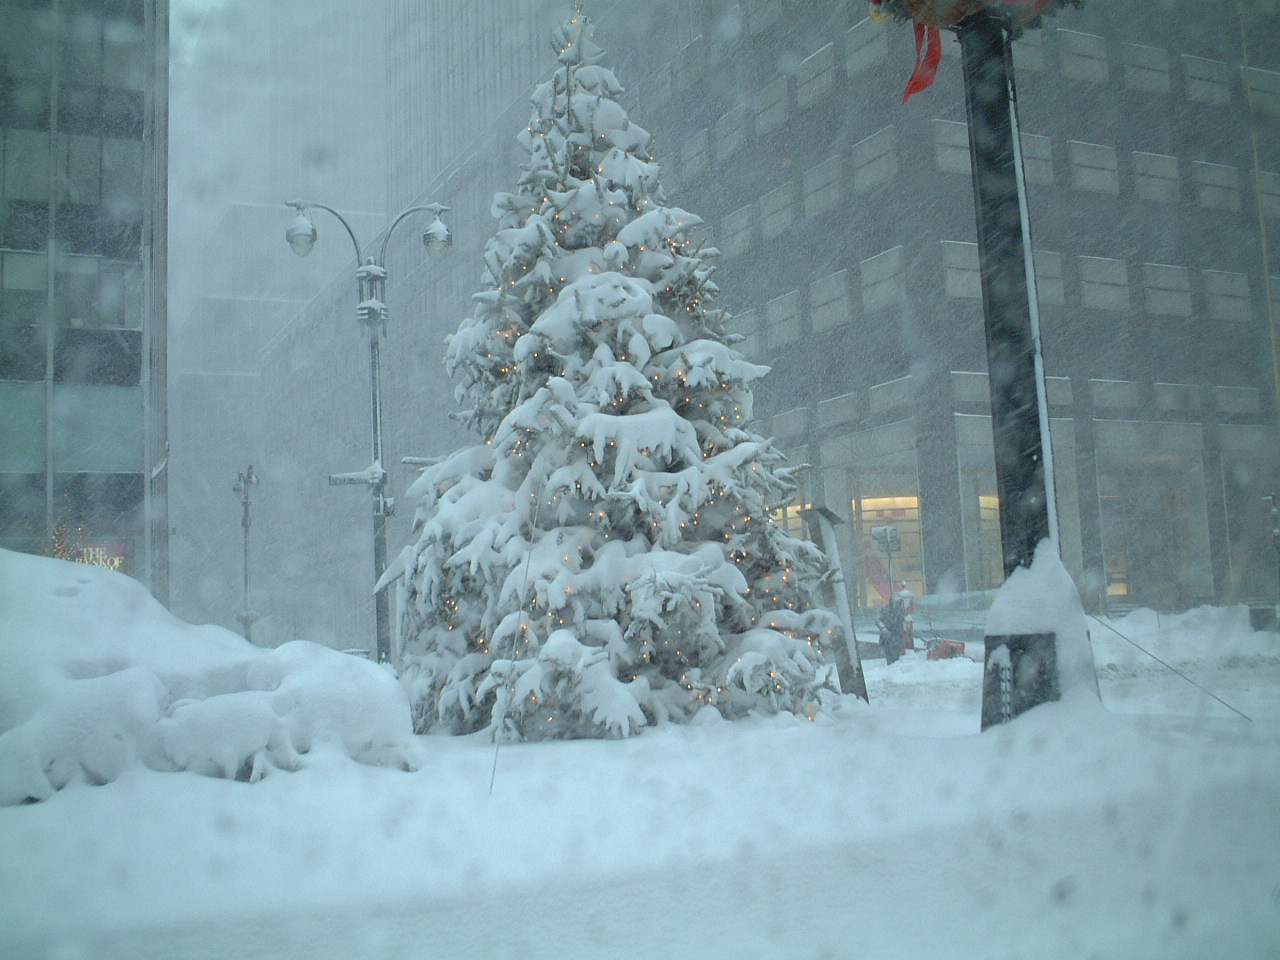 Description Nyc snow 3.jpg